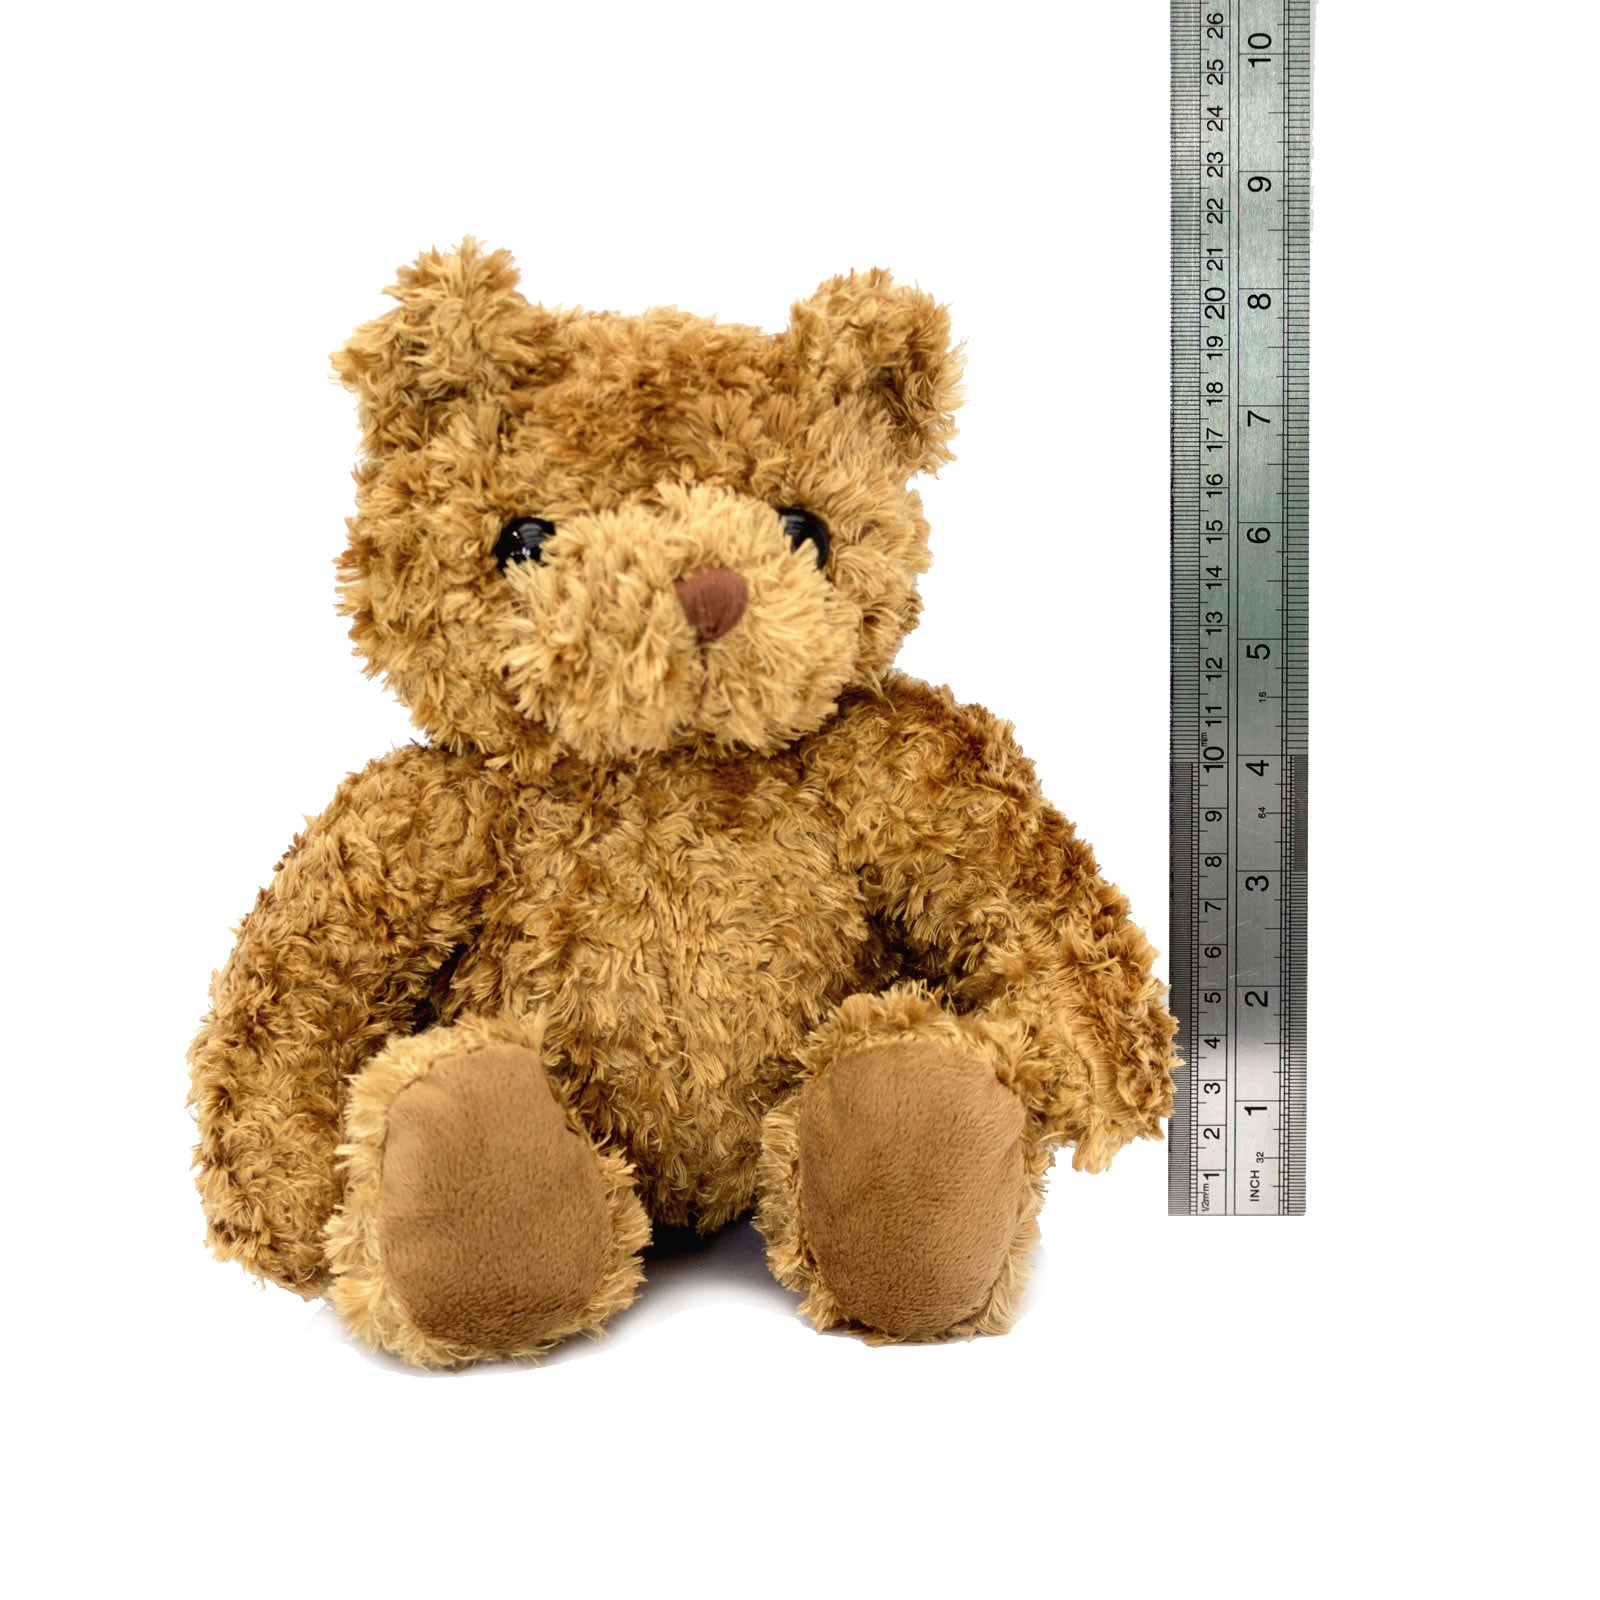 8 Inch Seated Teddy Bear with Ruler